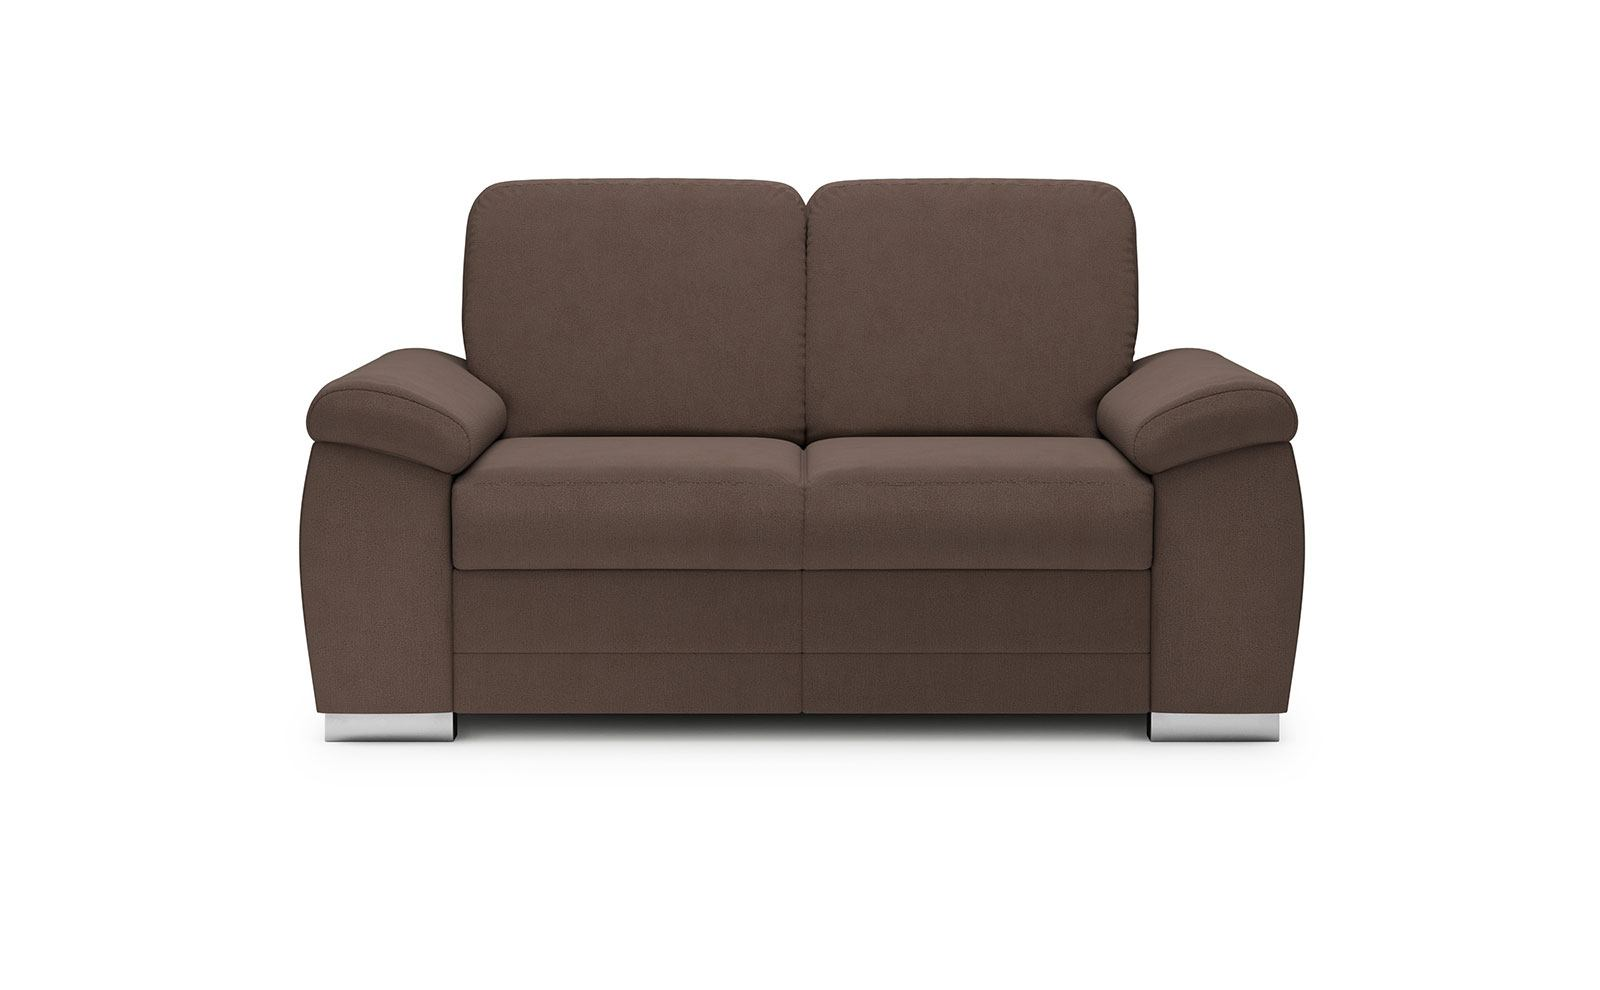 Barello Sofa 2 With A Container - soft touch marrone